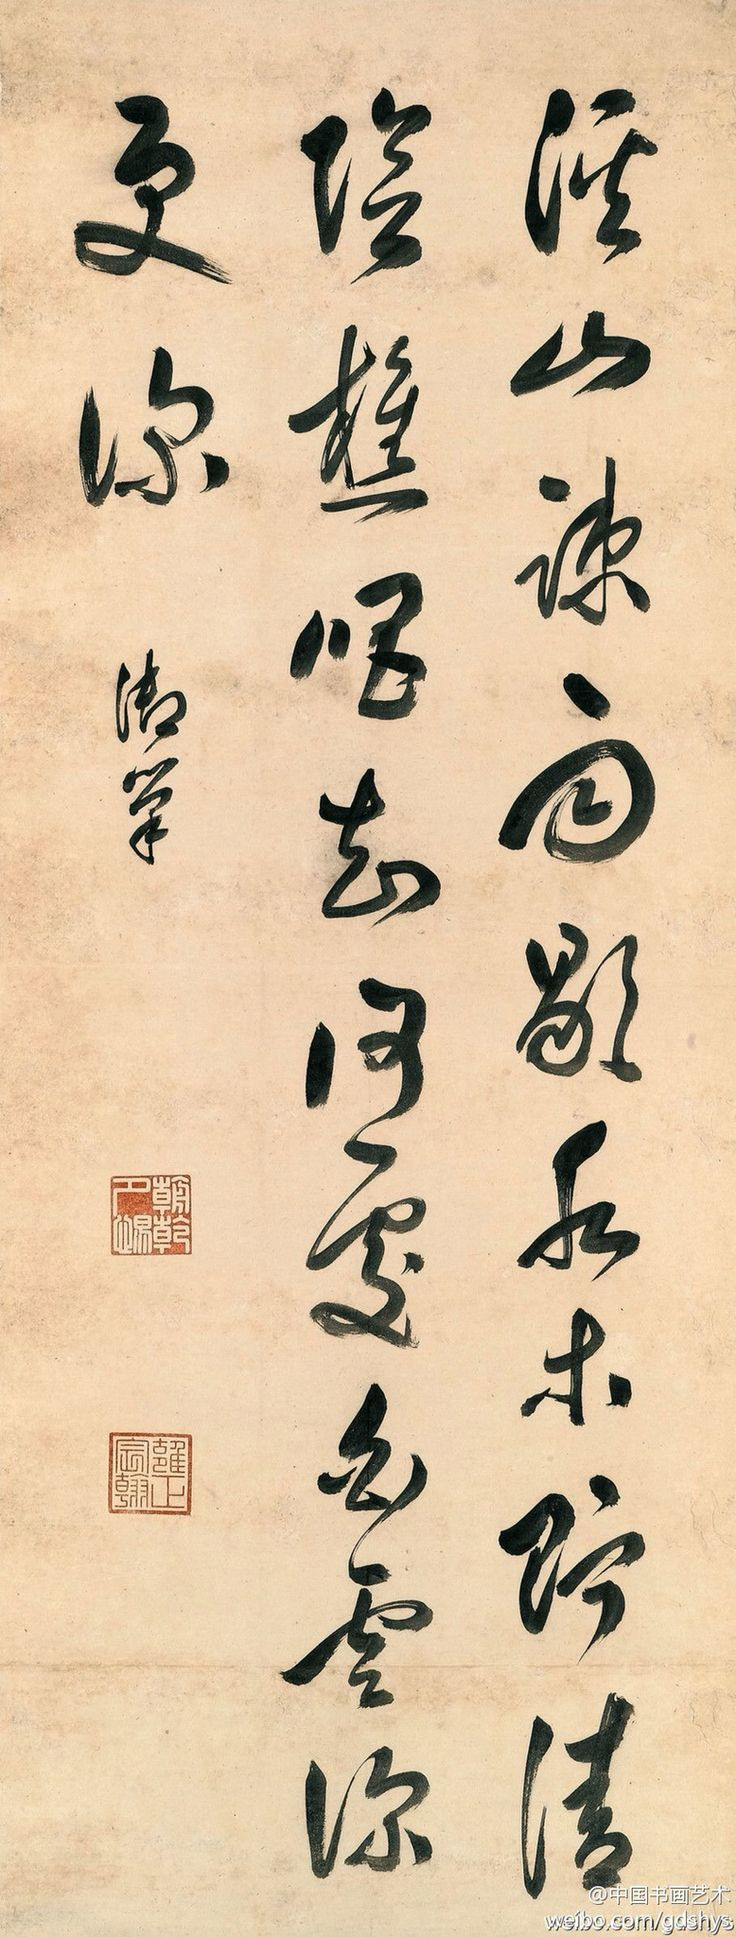 36 best things to calligraph images on pinterest chinese calligraphy logo japanese calligraphy caligraphy typography chinese painting chinese art chinese brush handwritting japanese art buycottarizona Image collections